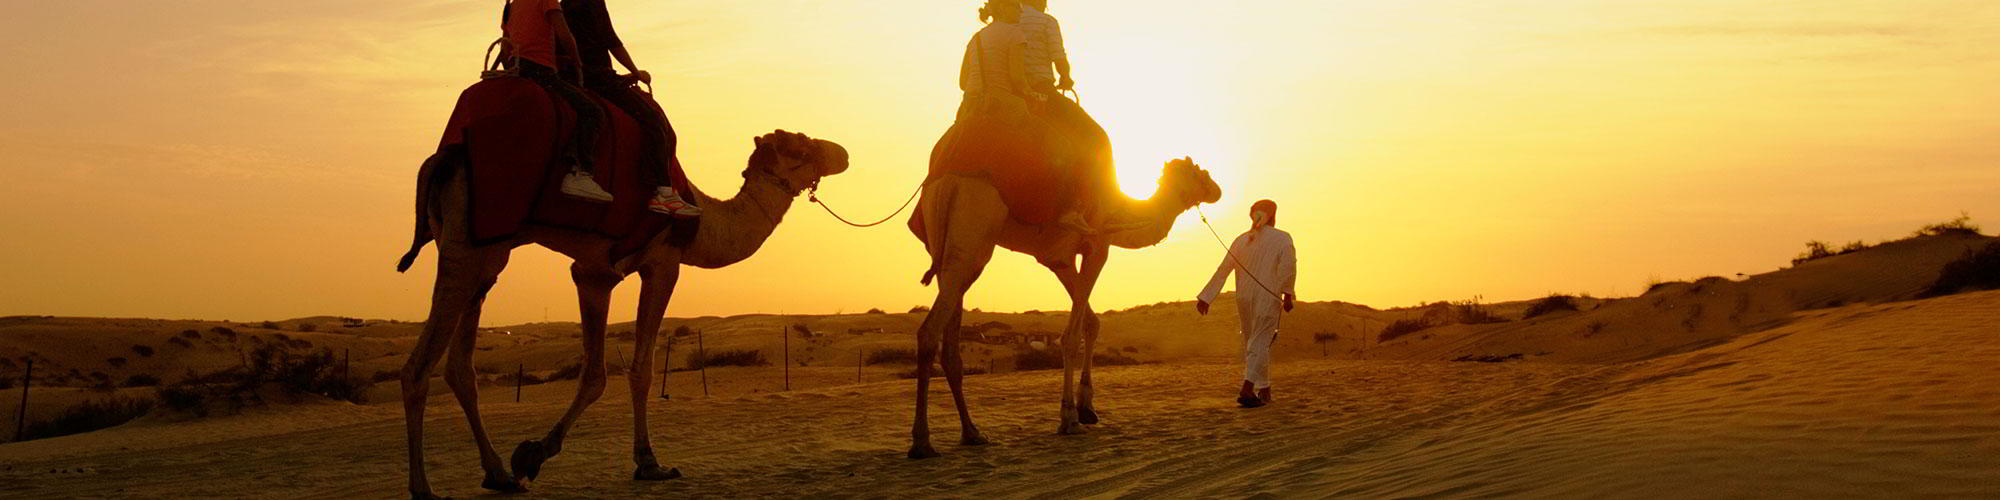 Journeys to Dubai